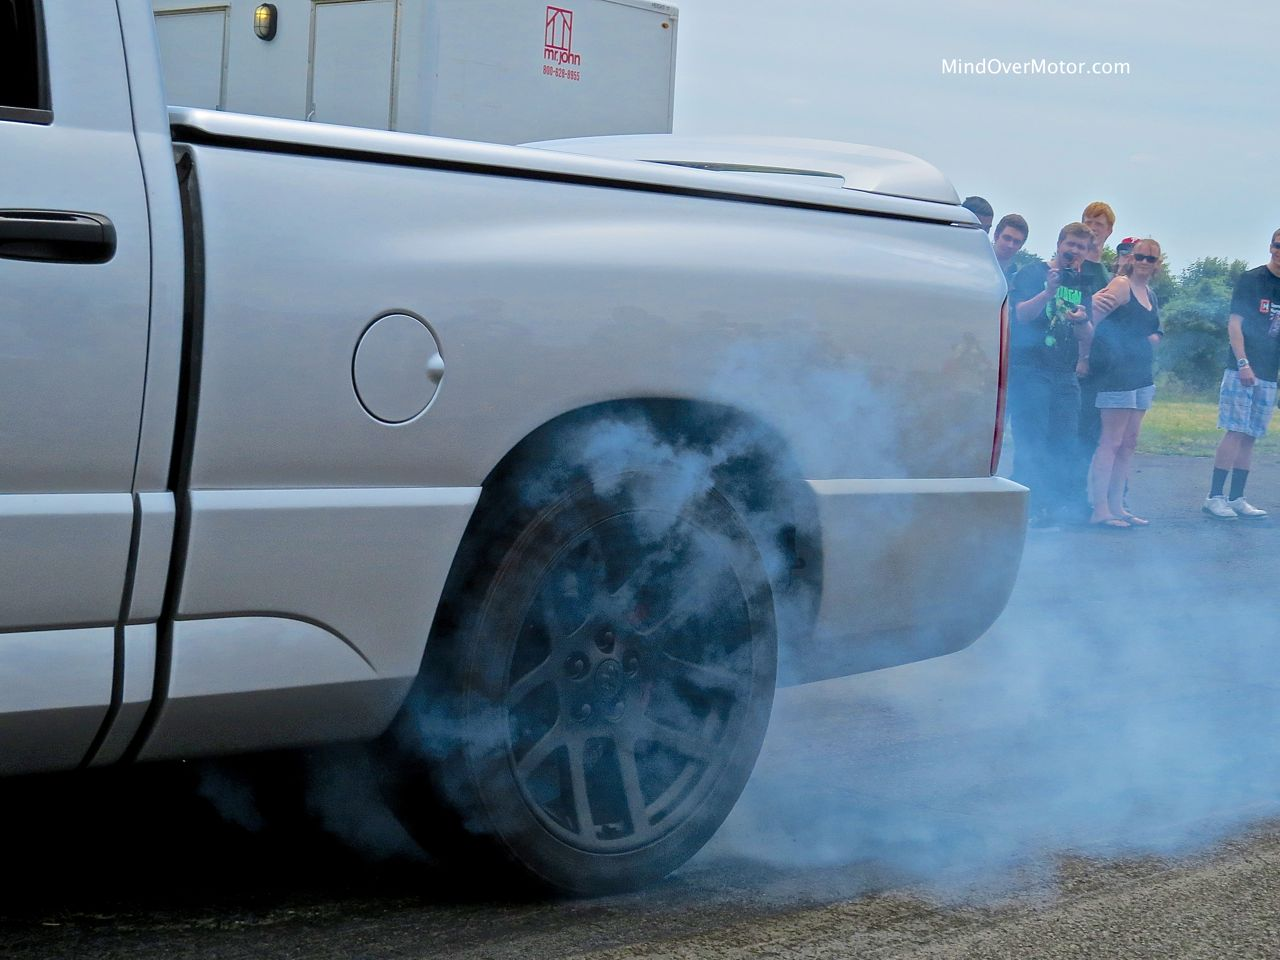 Dodge Ram SRT-10 Tire Burnout